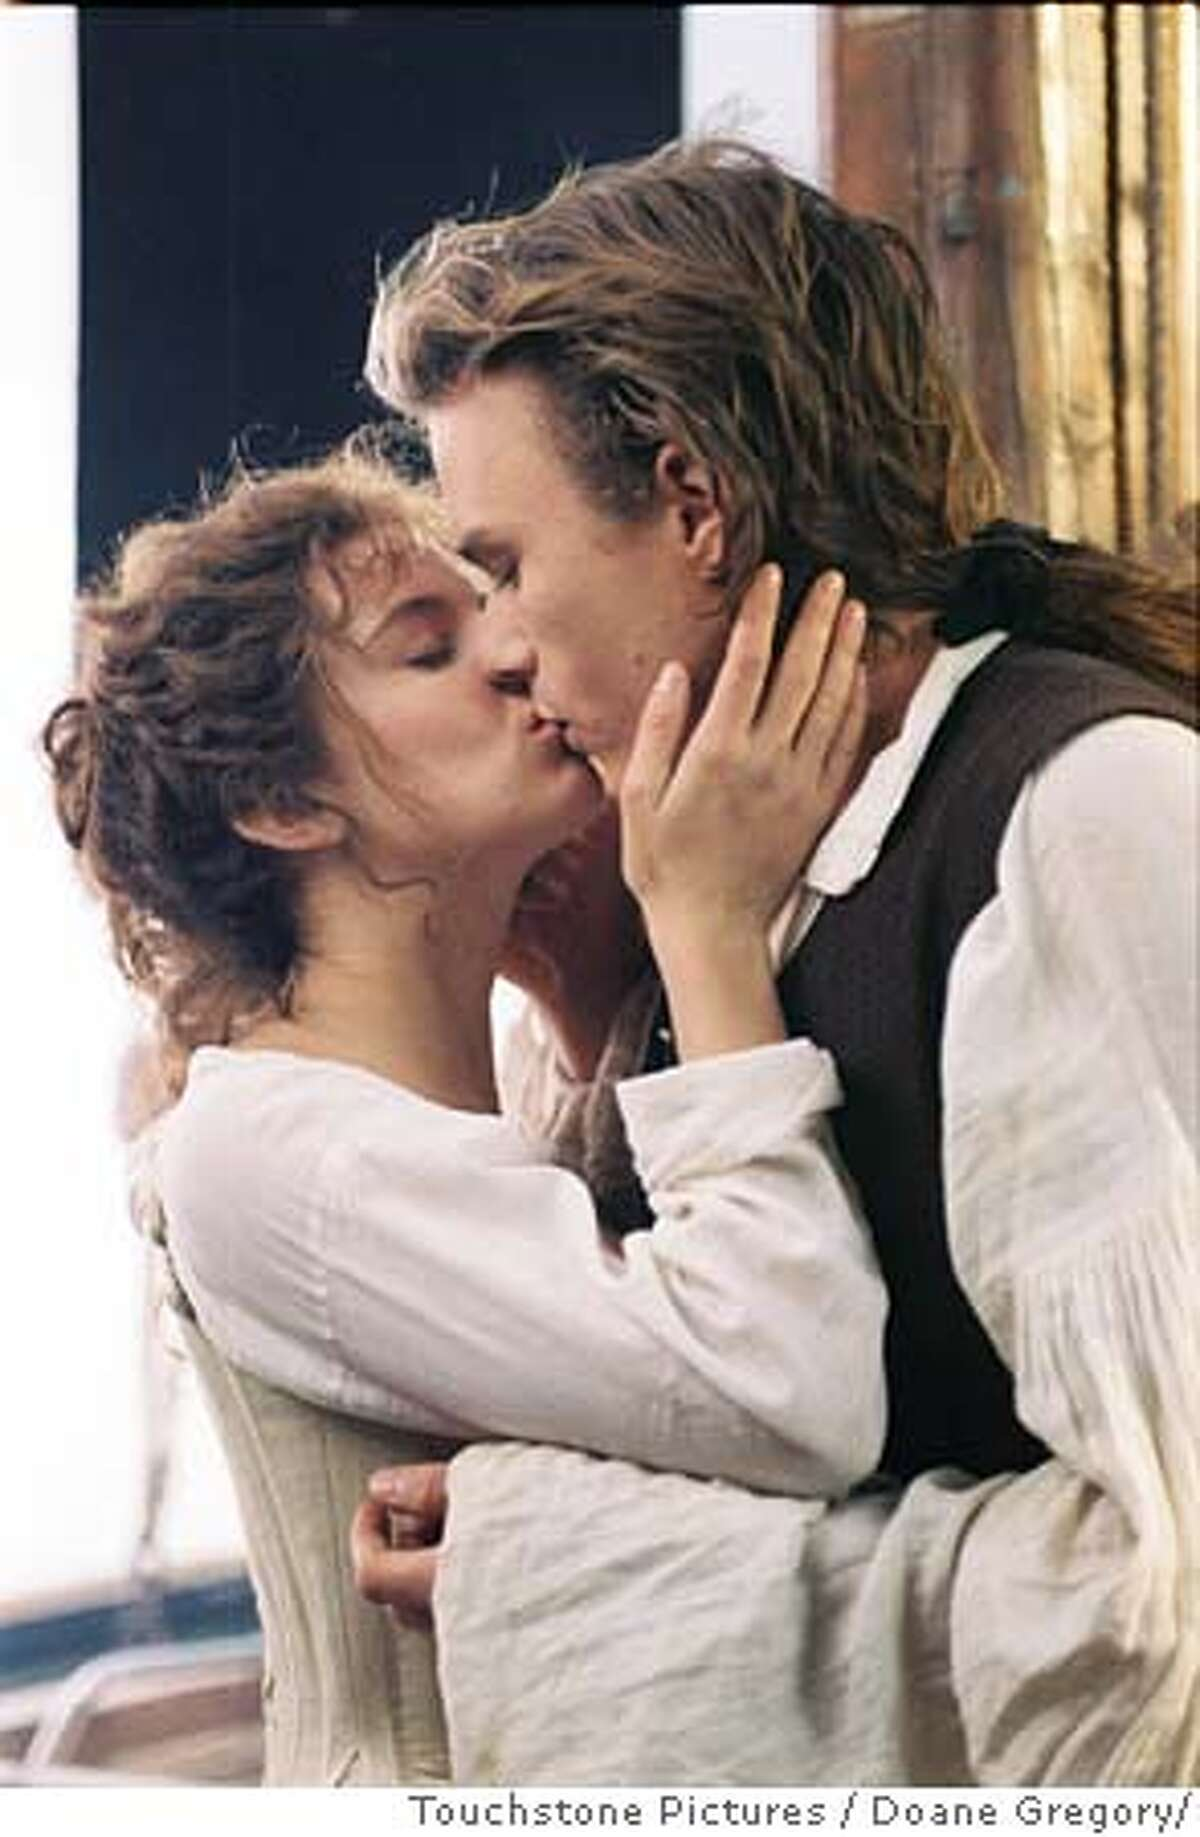 Actor Heath Ledger, who plays the role of Casanova, kisses co-star Sienna Miller in a scene from the new film 'Casanova' in this undated publicity photograph. The film opens in limited release in the United States December 25, 2005. NO ARCHIVES REUTERS/Doane Gregory/Touchstone Pictures/Handout 0